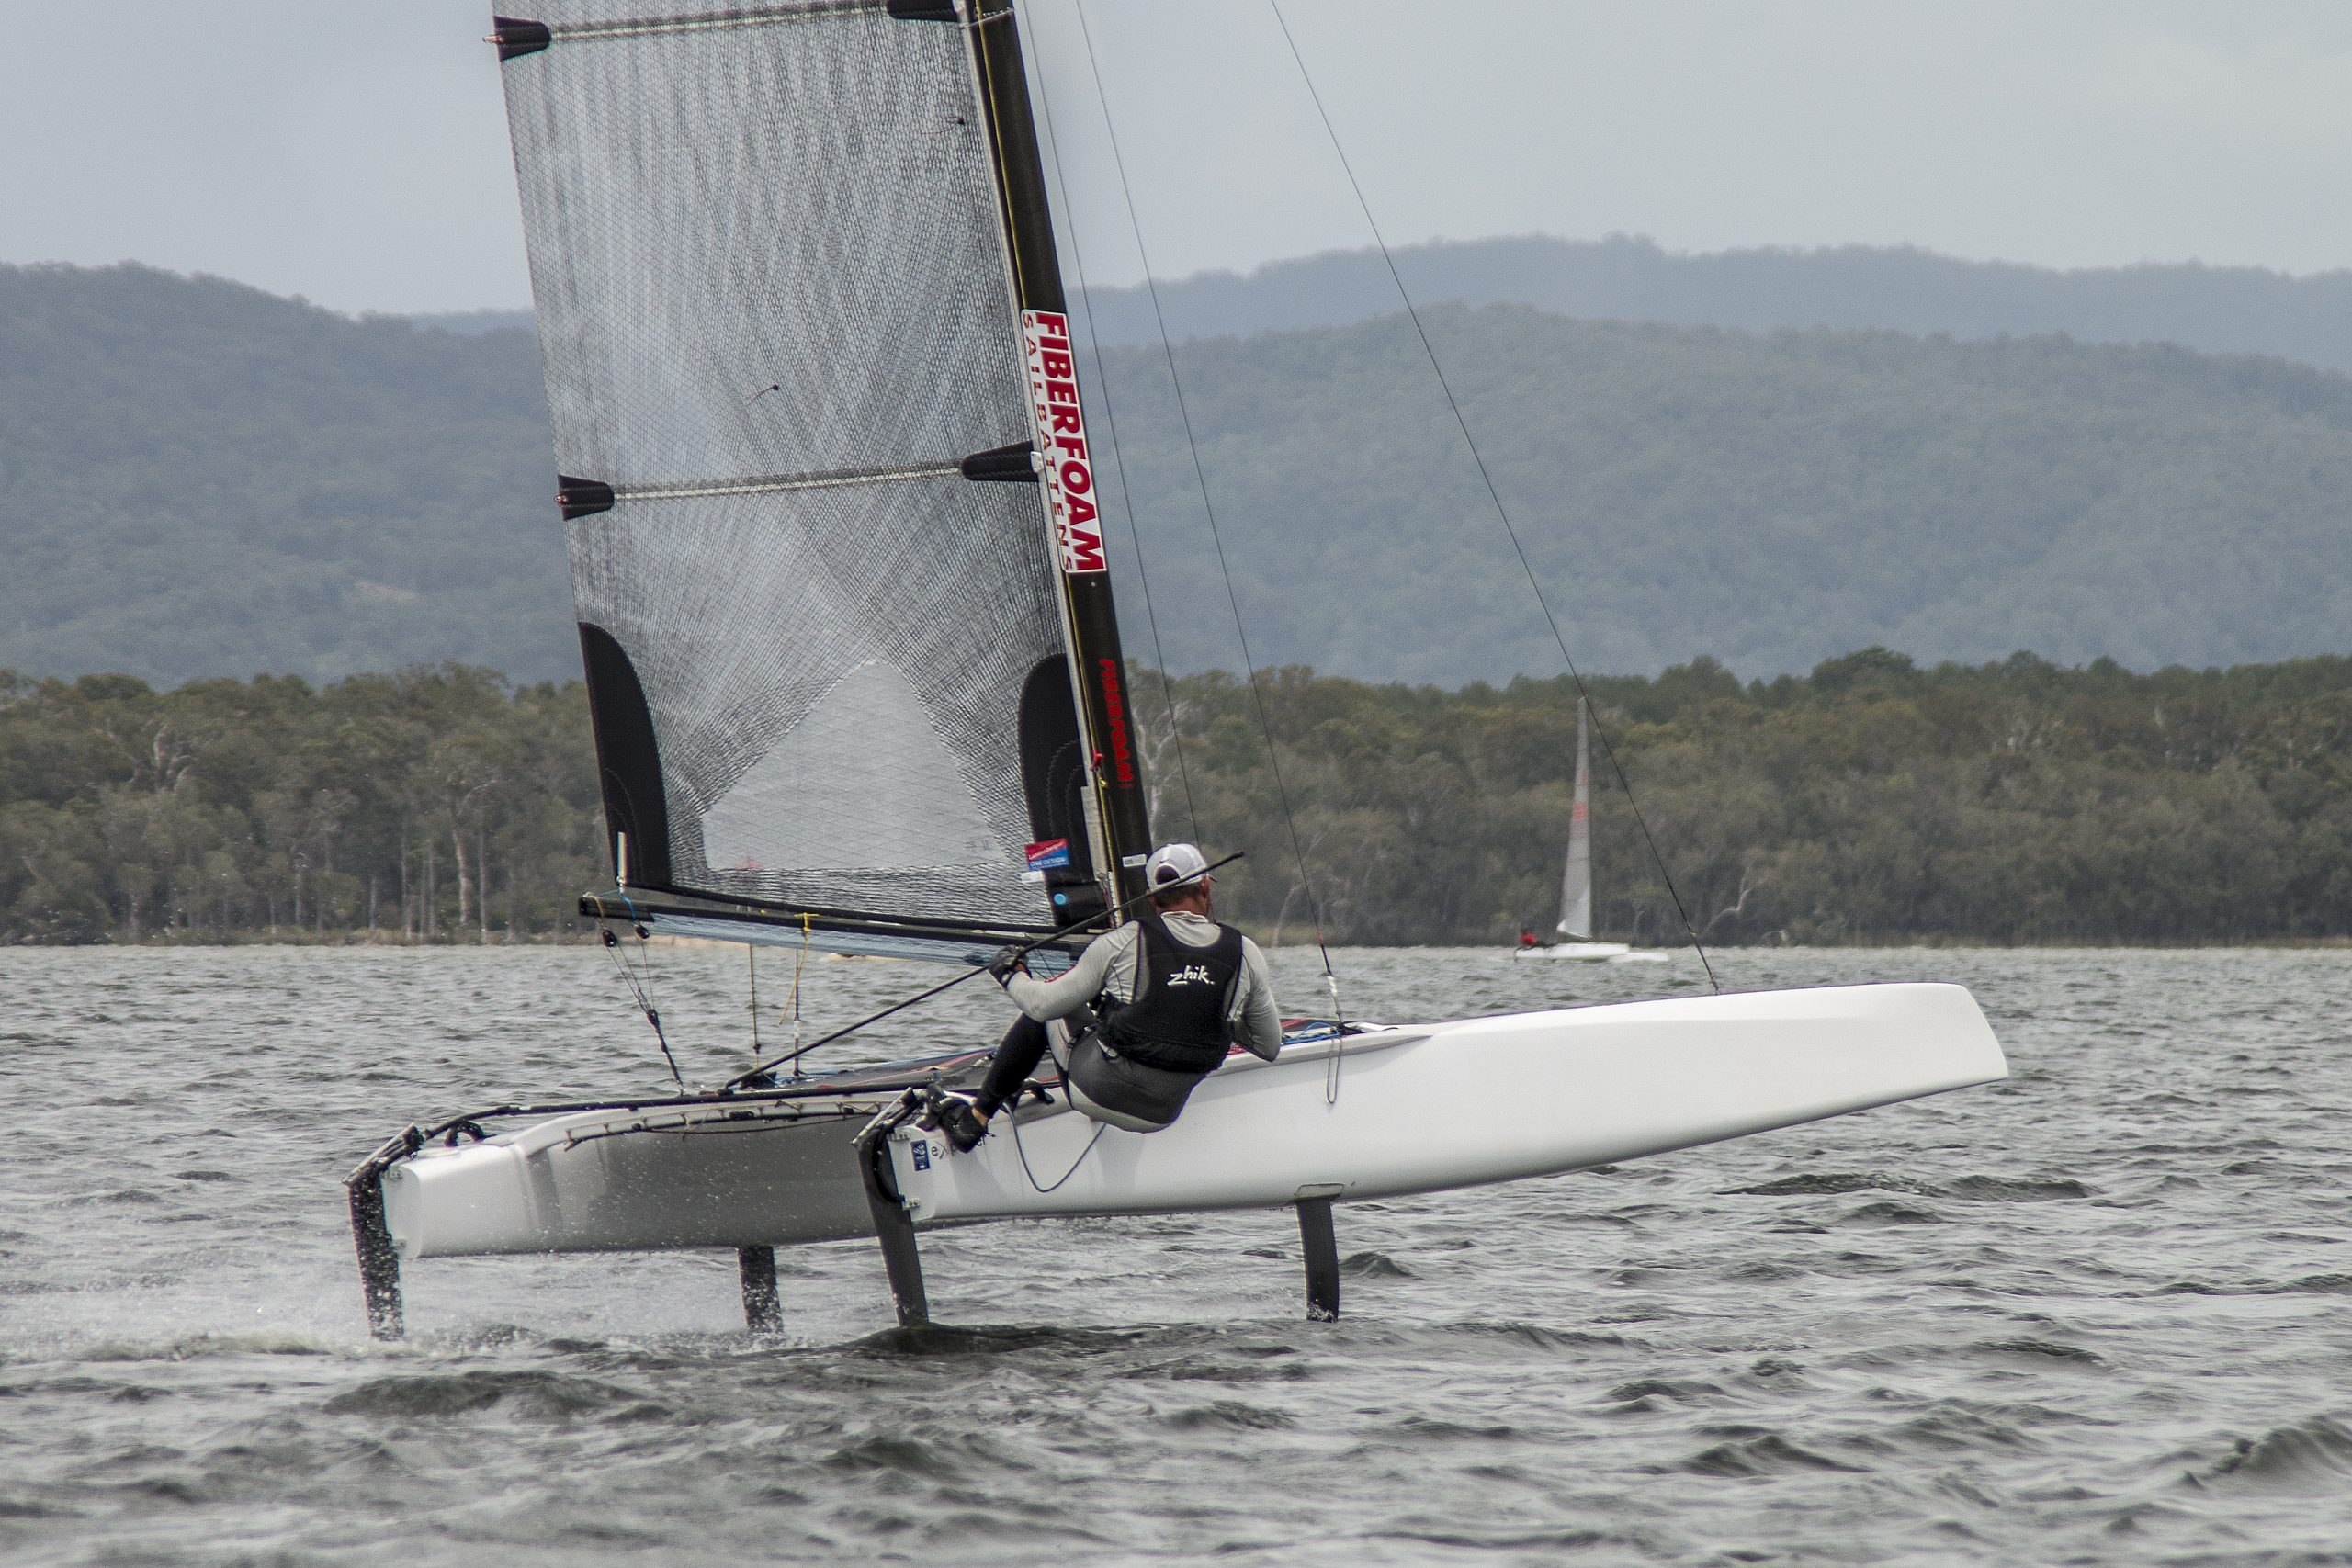 Brad Collett at the 2015 A Class Australian Championship. Photo Julie Hartwig Photography.